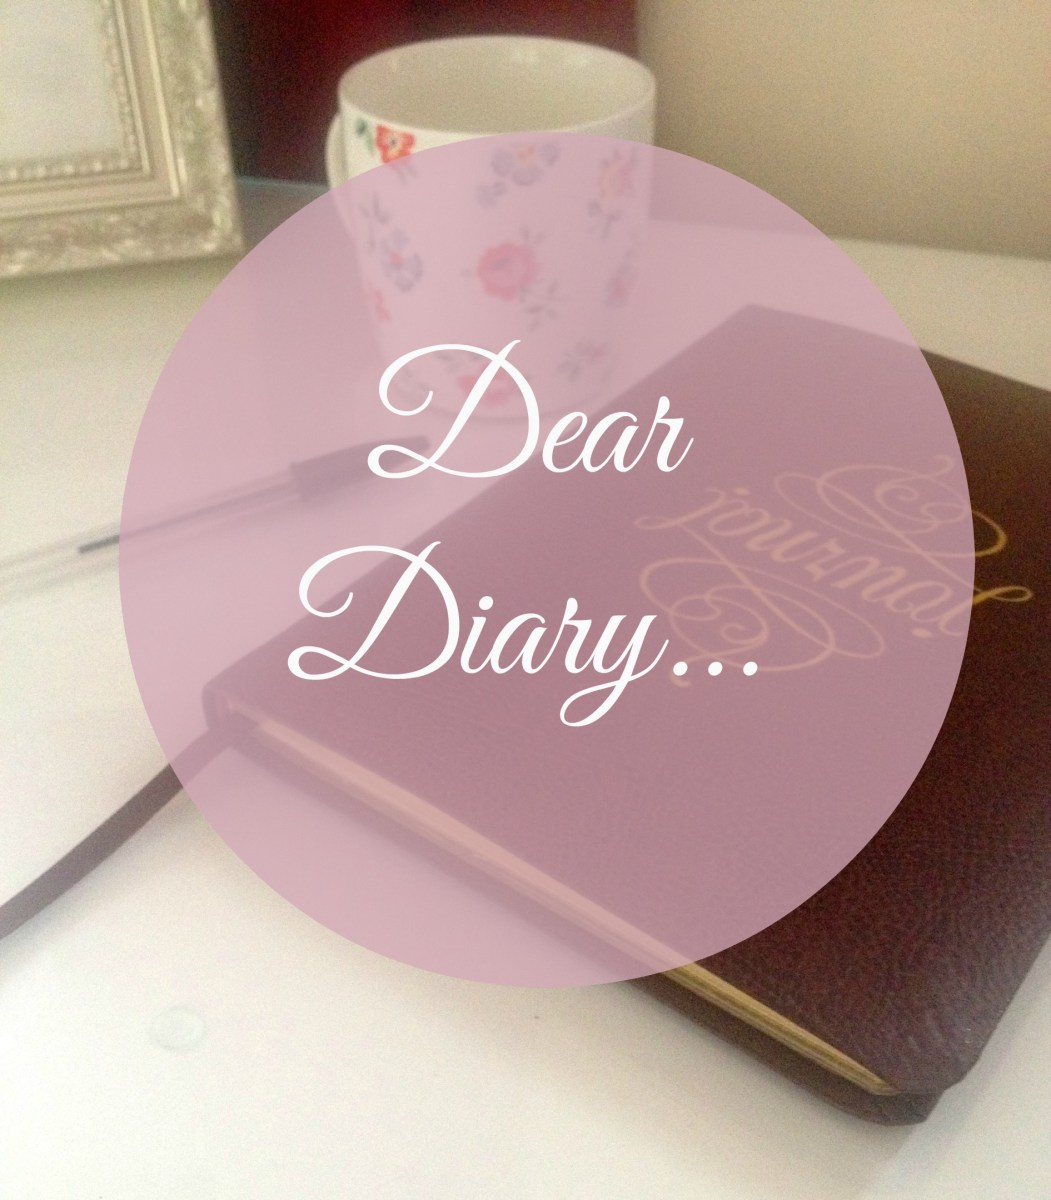 Dear Diary:  I'm just not in the mood